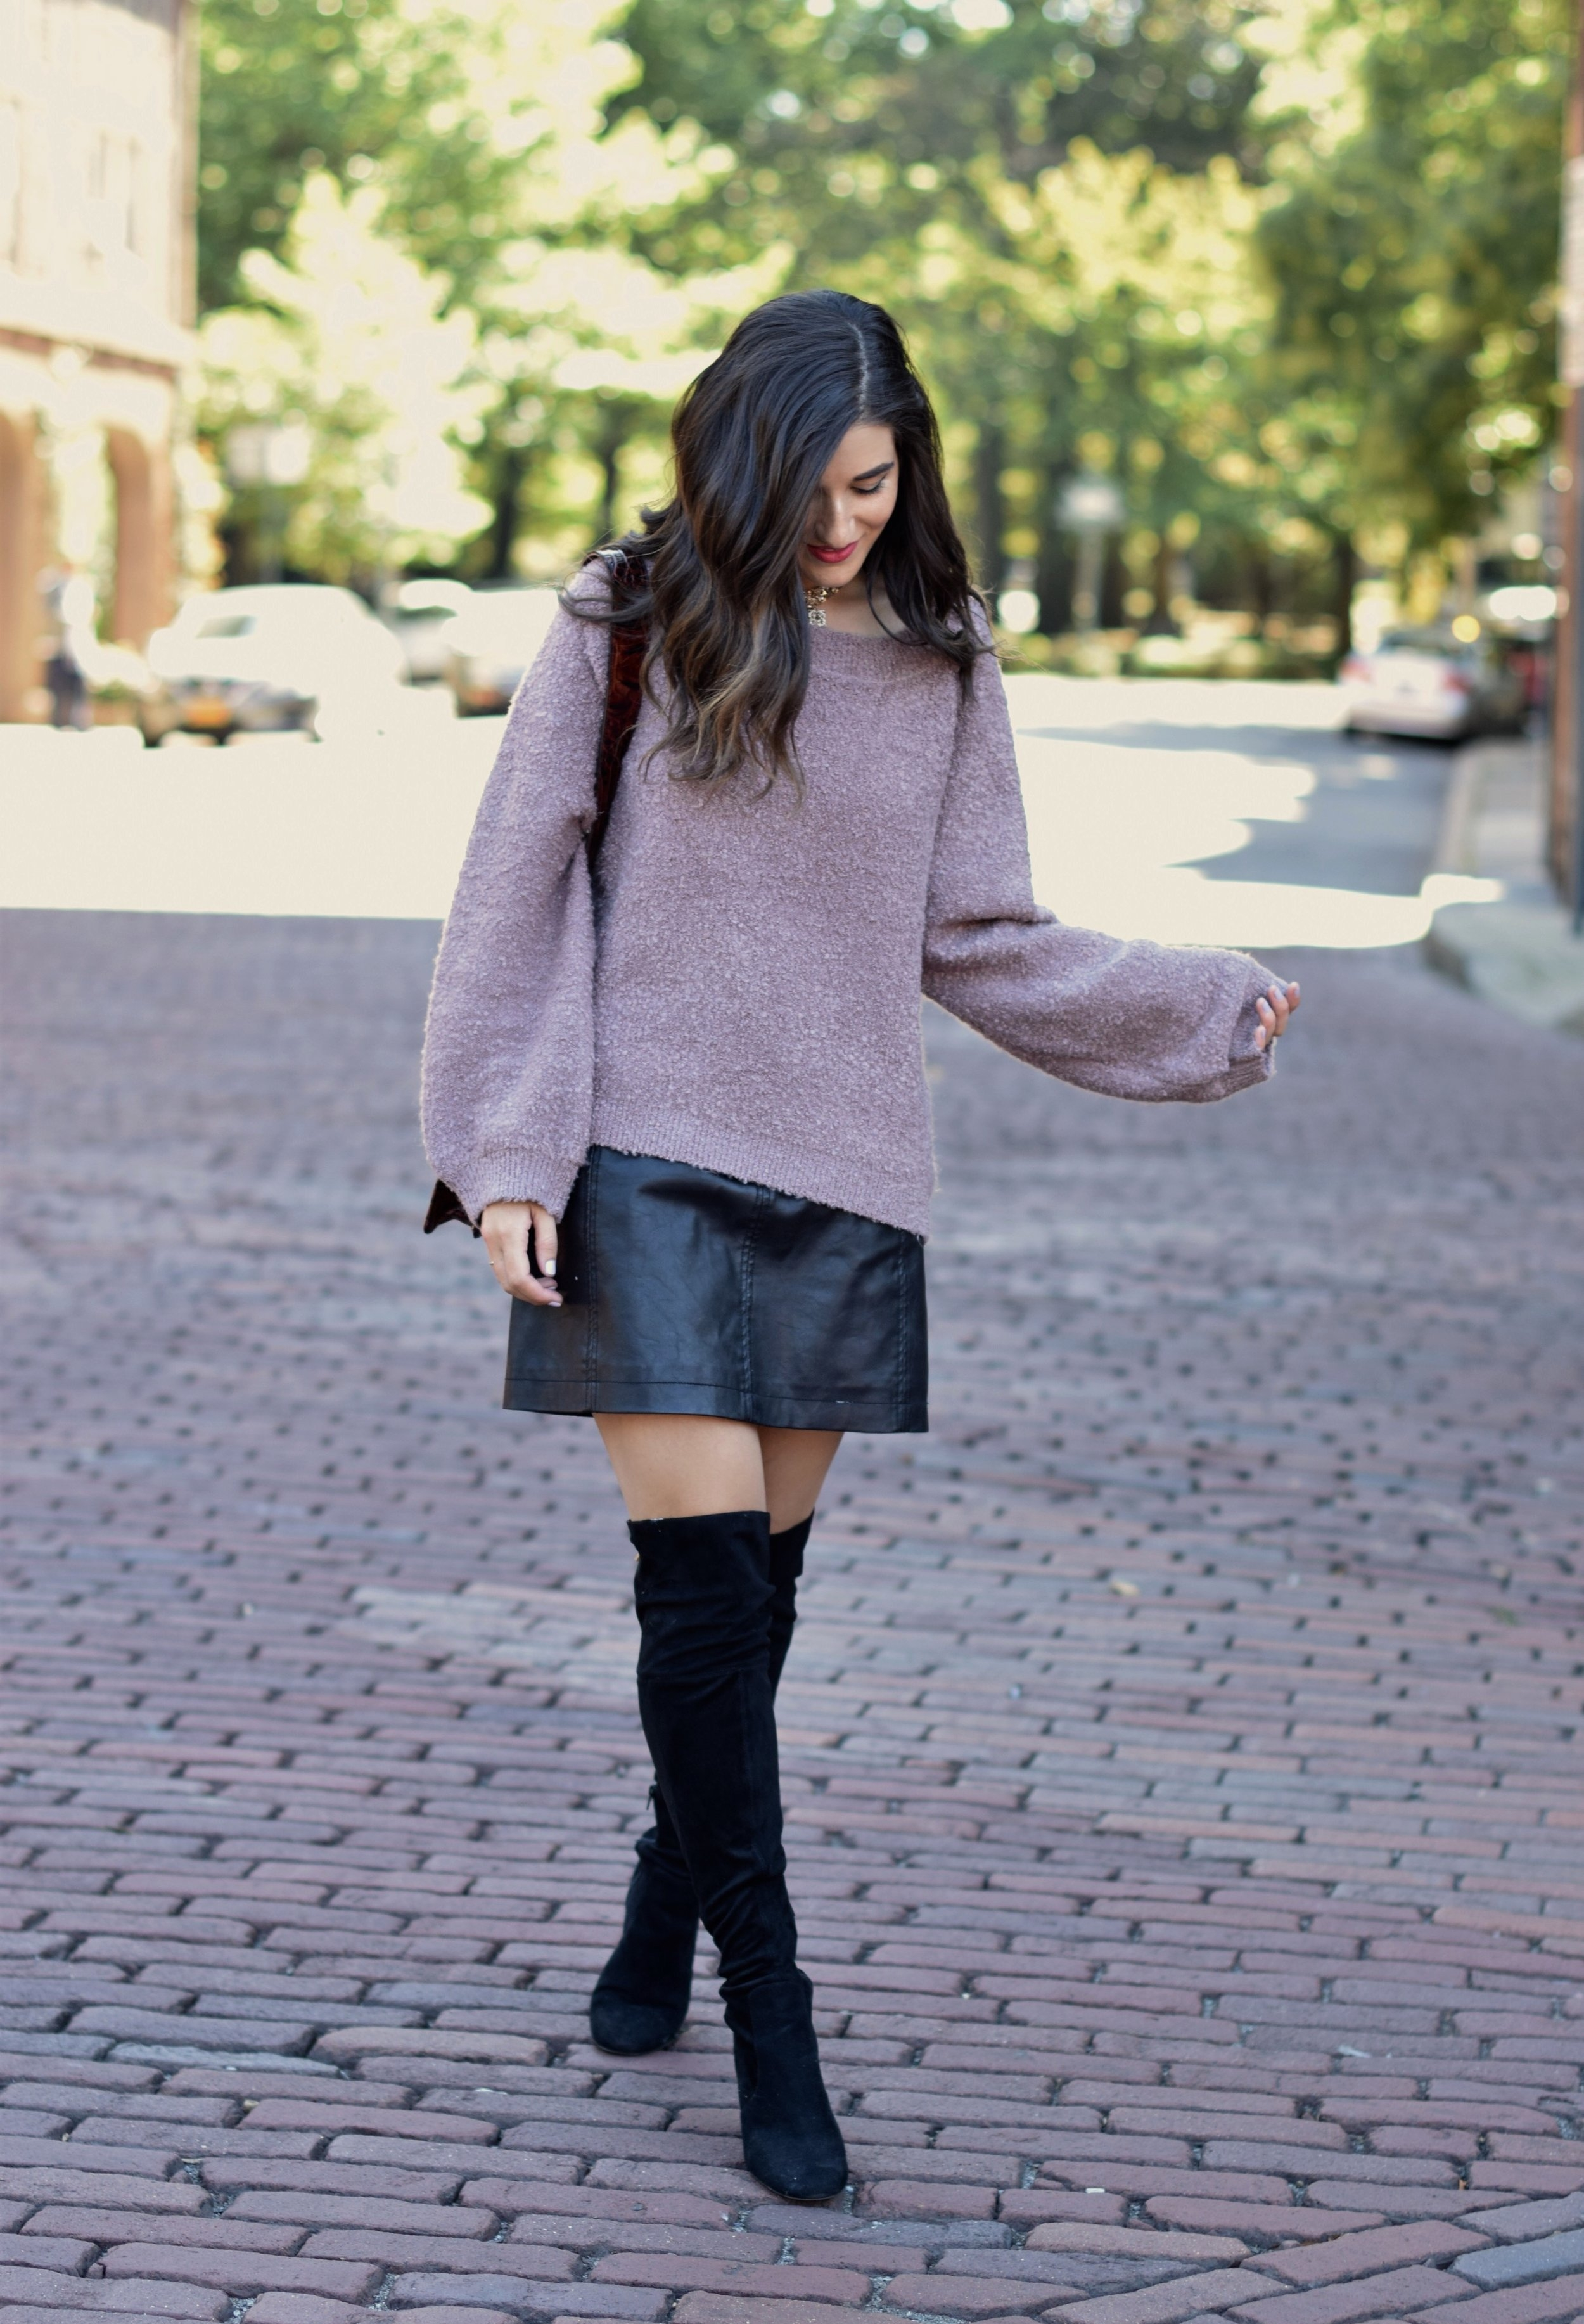 Purple Sweater Black Leather Skirt 8 Tips On Switching Your Blog Name Esther Santer Fashion Blog NYC Street Style Blogger Outfit OOTD Trendy Sunglasses Brahmin Bag Kendra Scott Choker Necklace Girl Women Urban Outfitters Winter Look Sale  Shopping.jpg